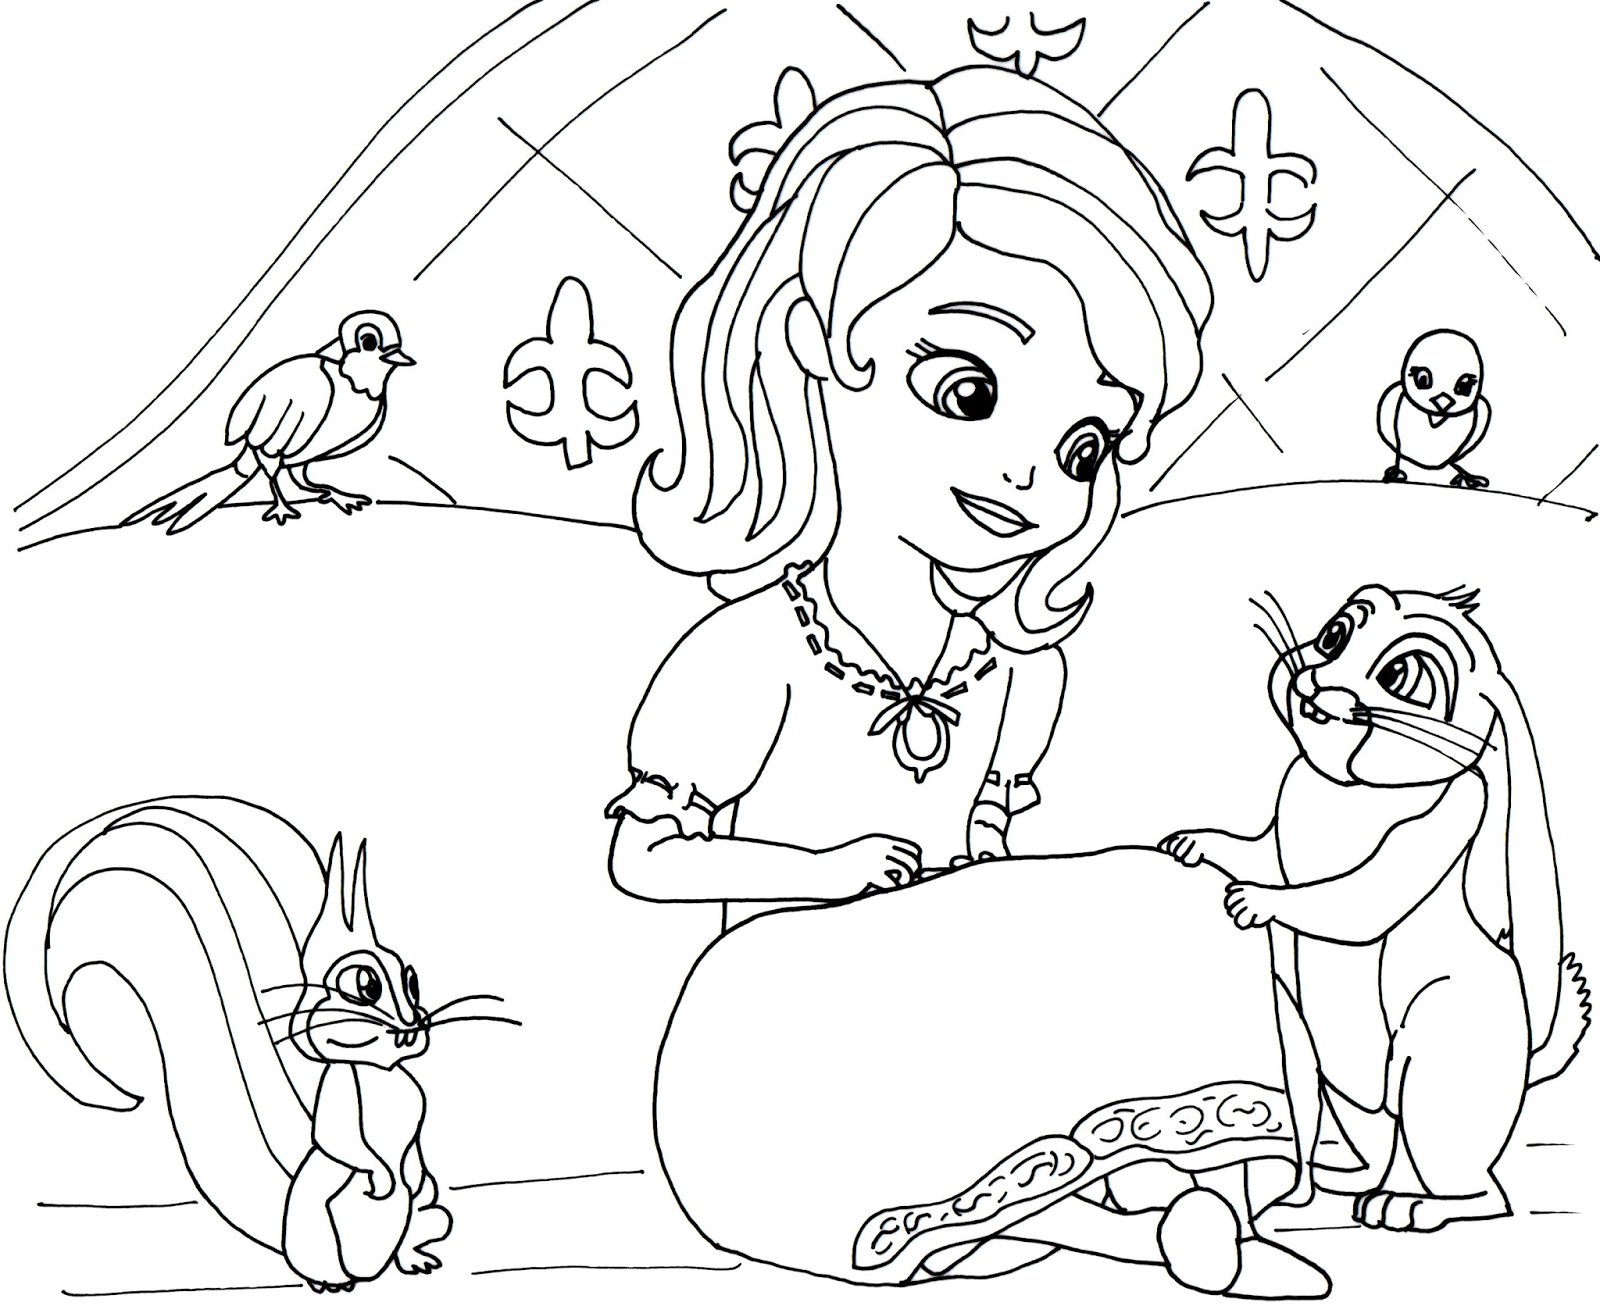 Princess ivy coloring page - Sofia The First Coloring Page In Night Gown